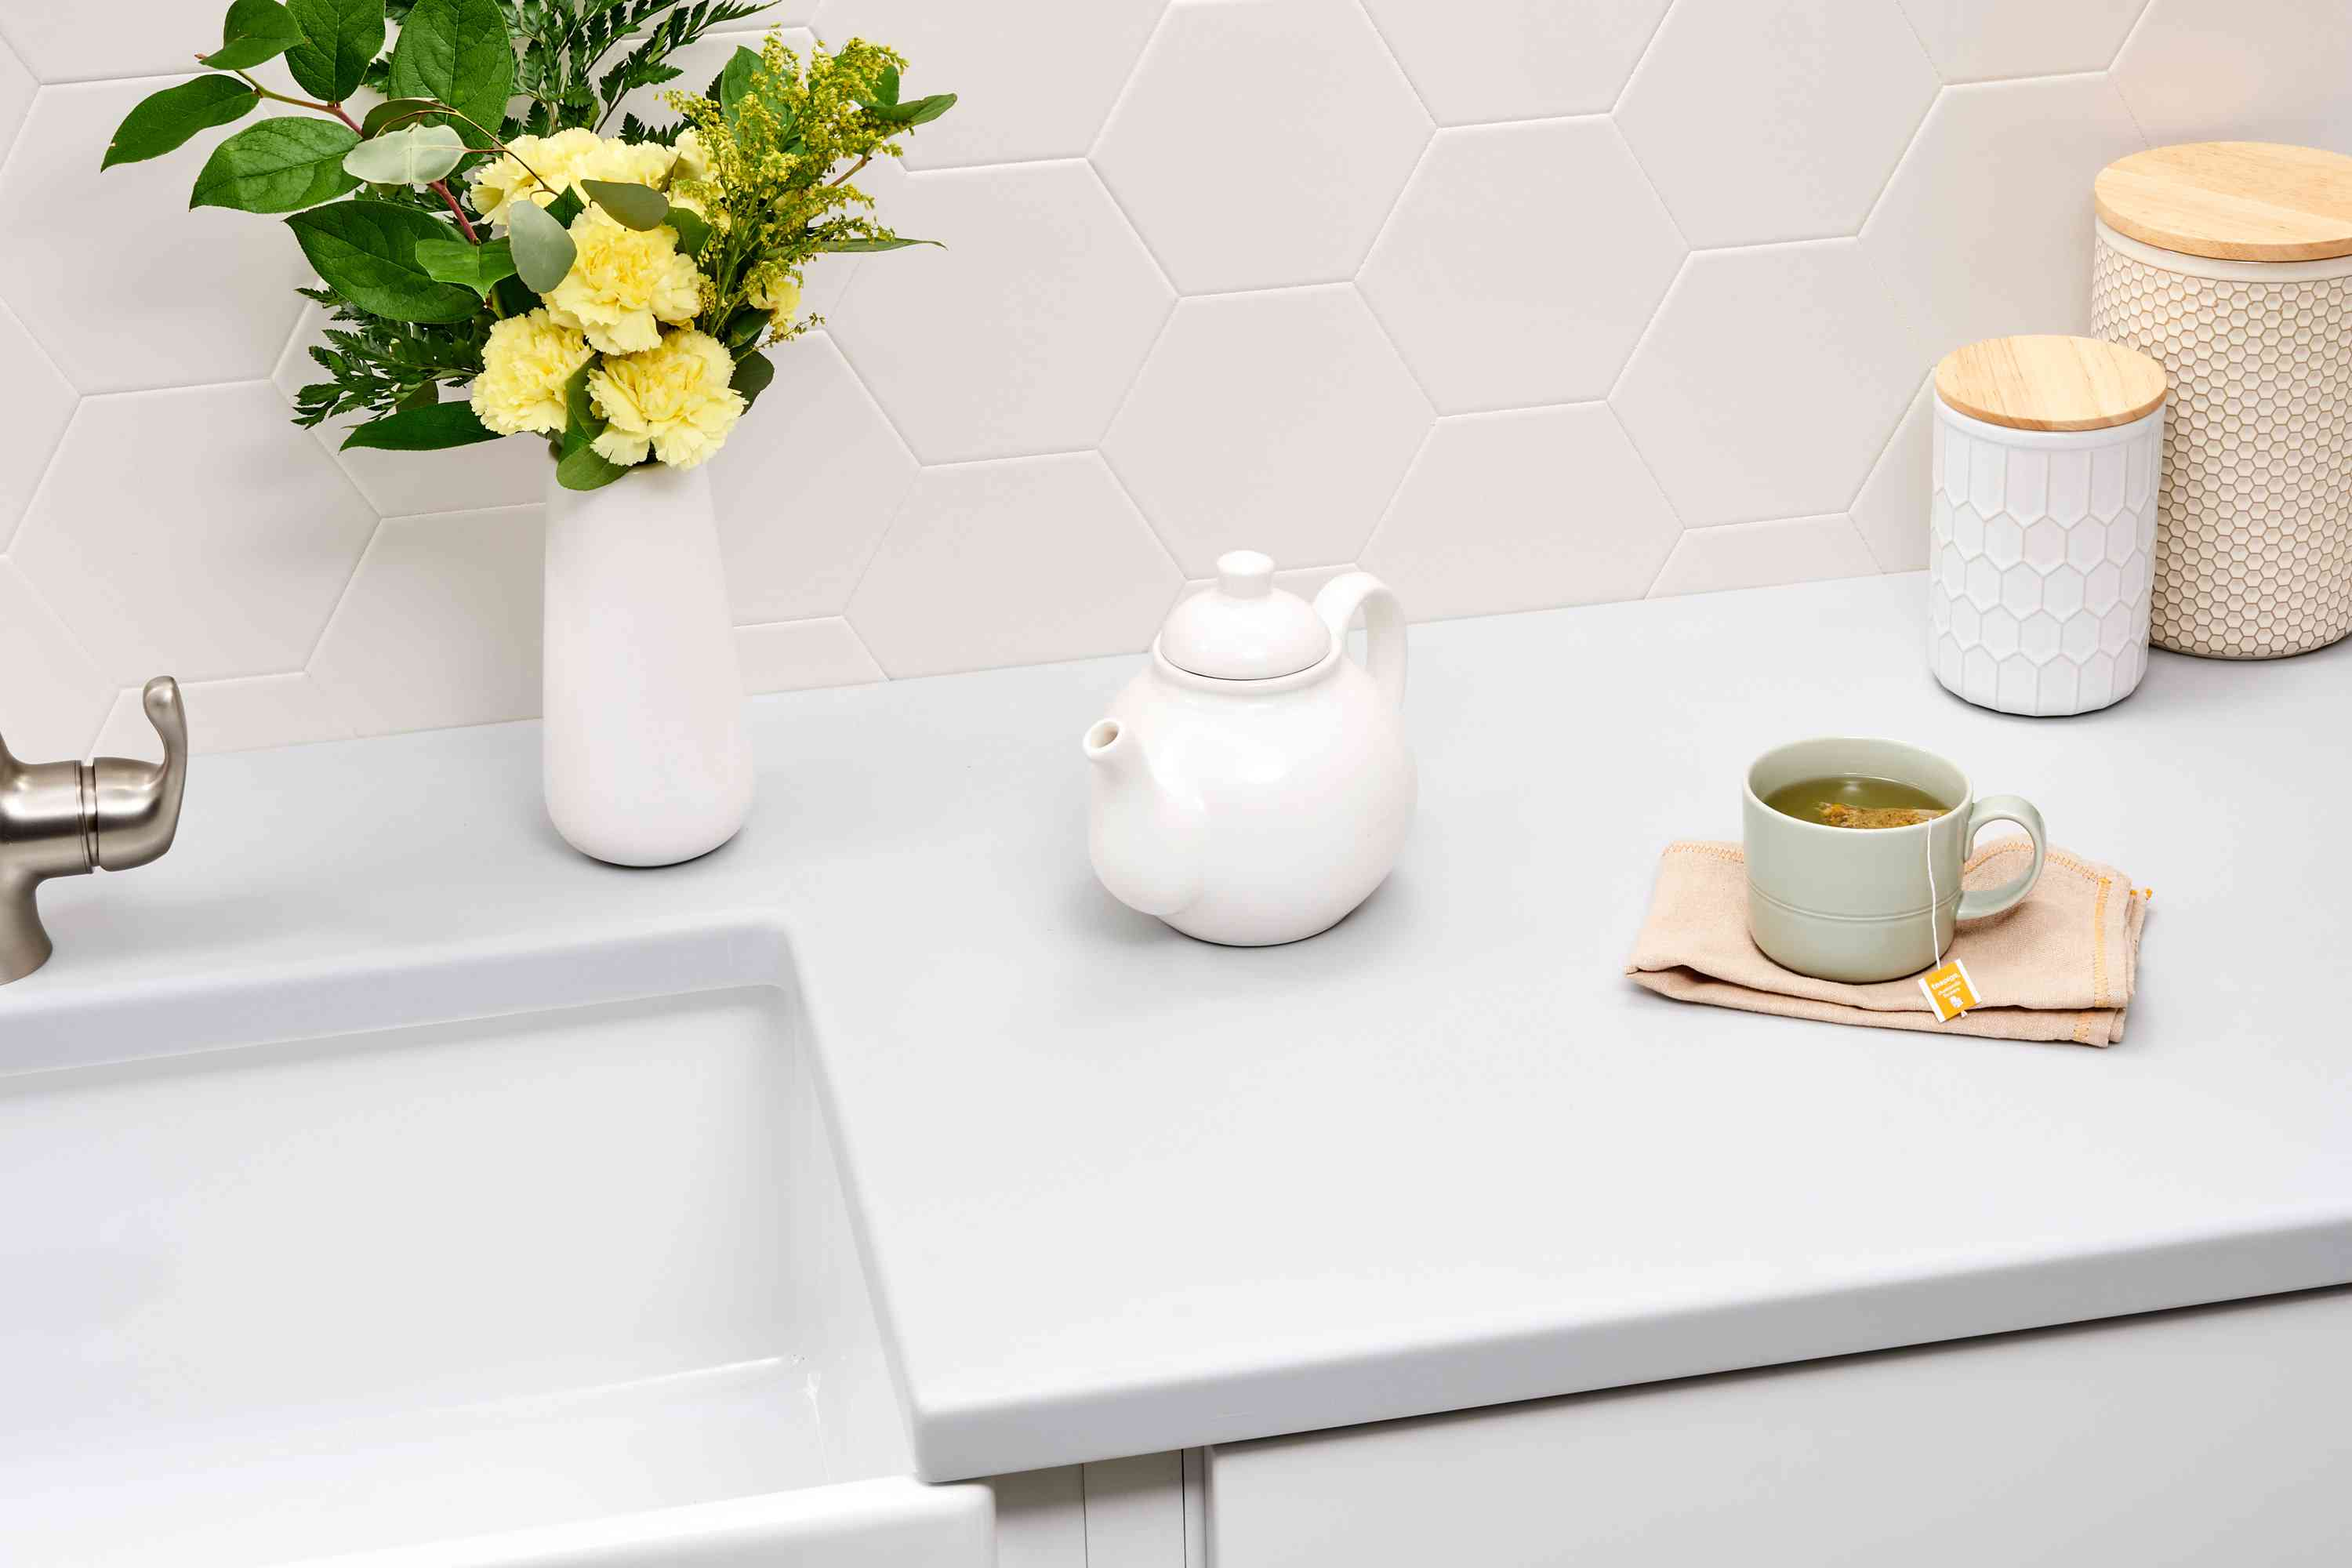 Kitchen solid surface countertop